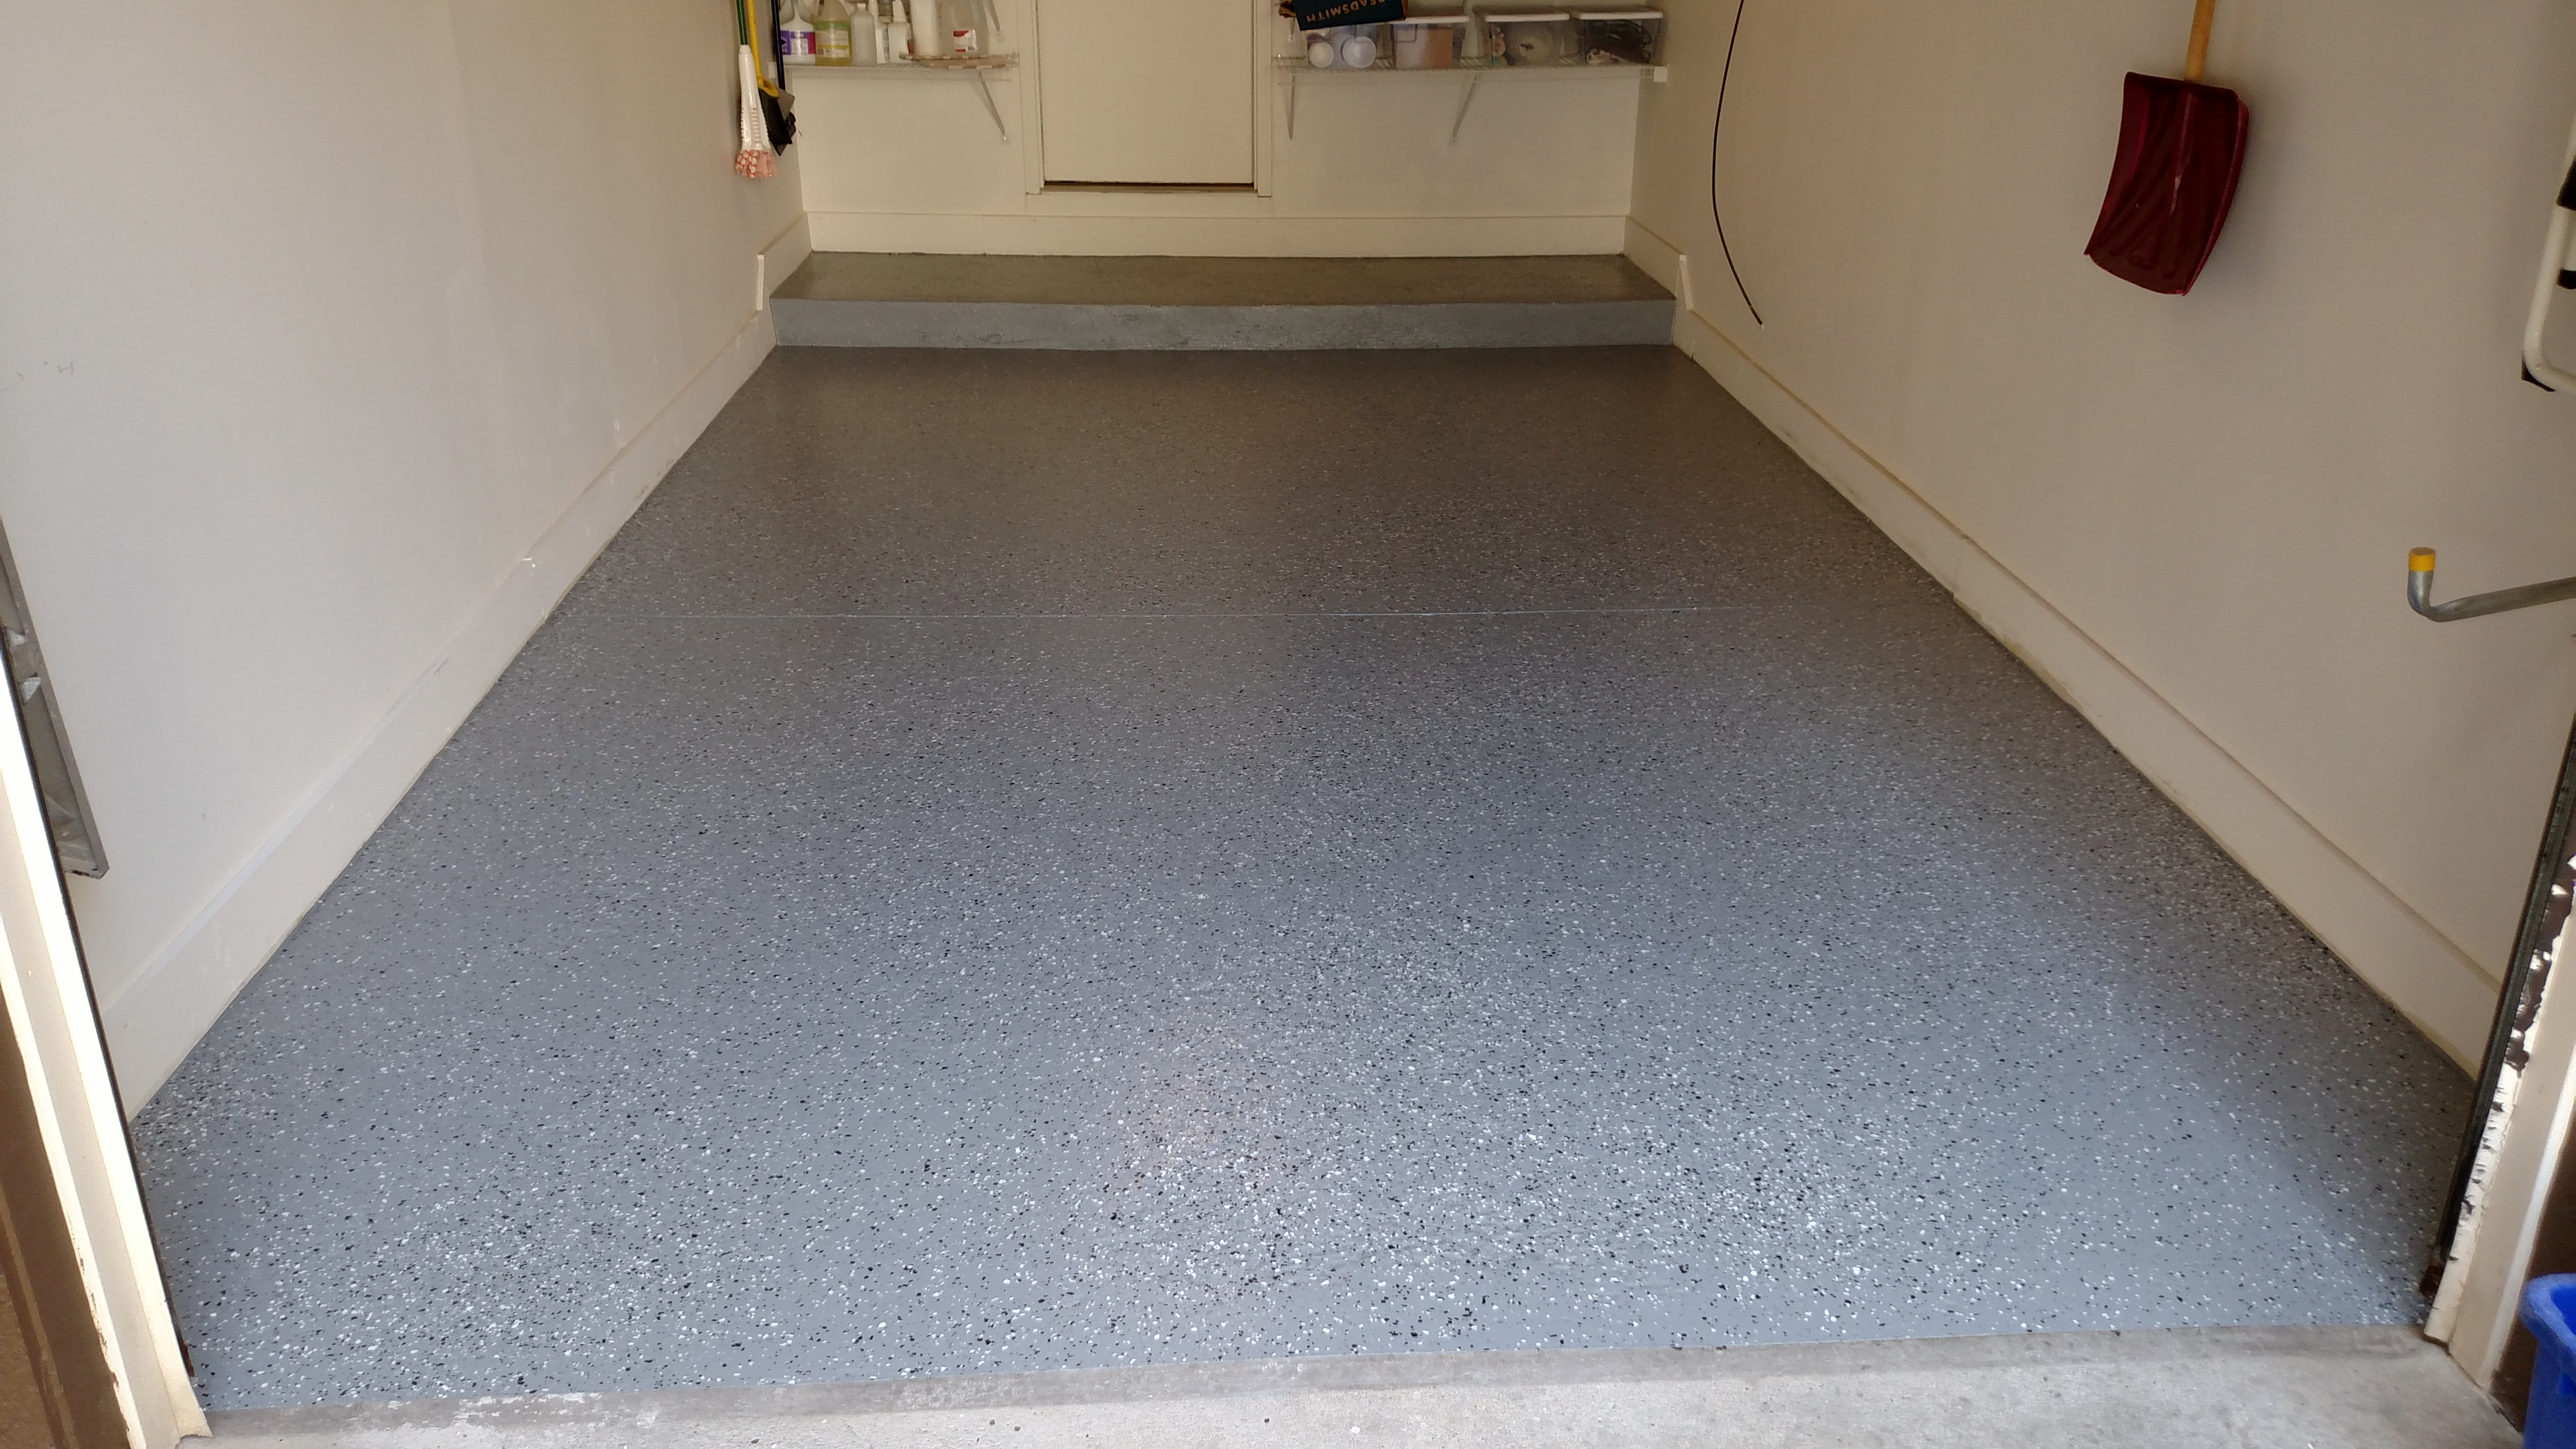 r garage your pros cons paint how to concrete floor homeadvisor staining flooring